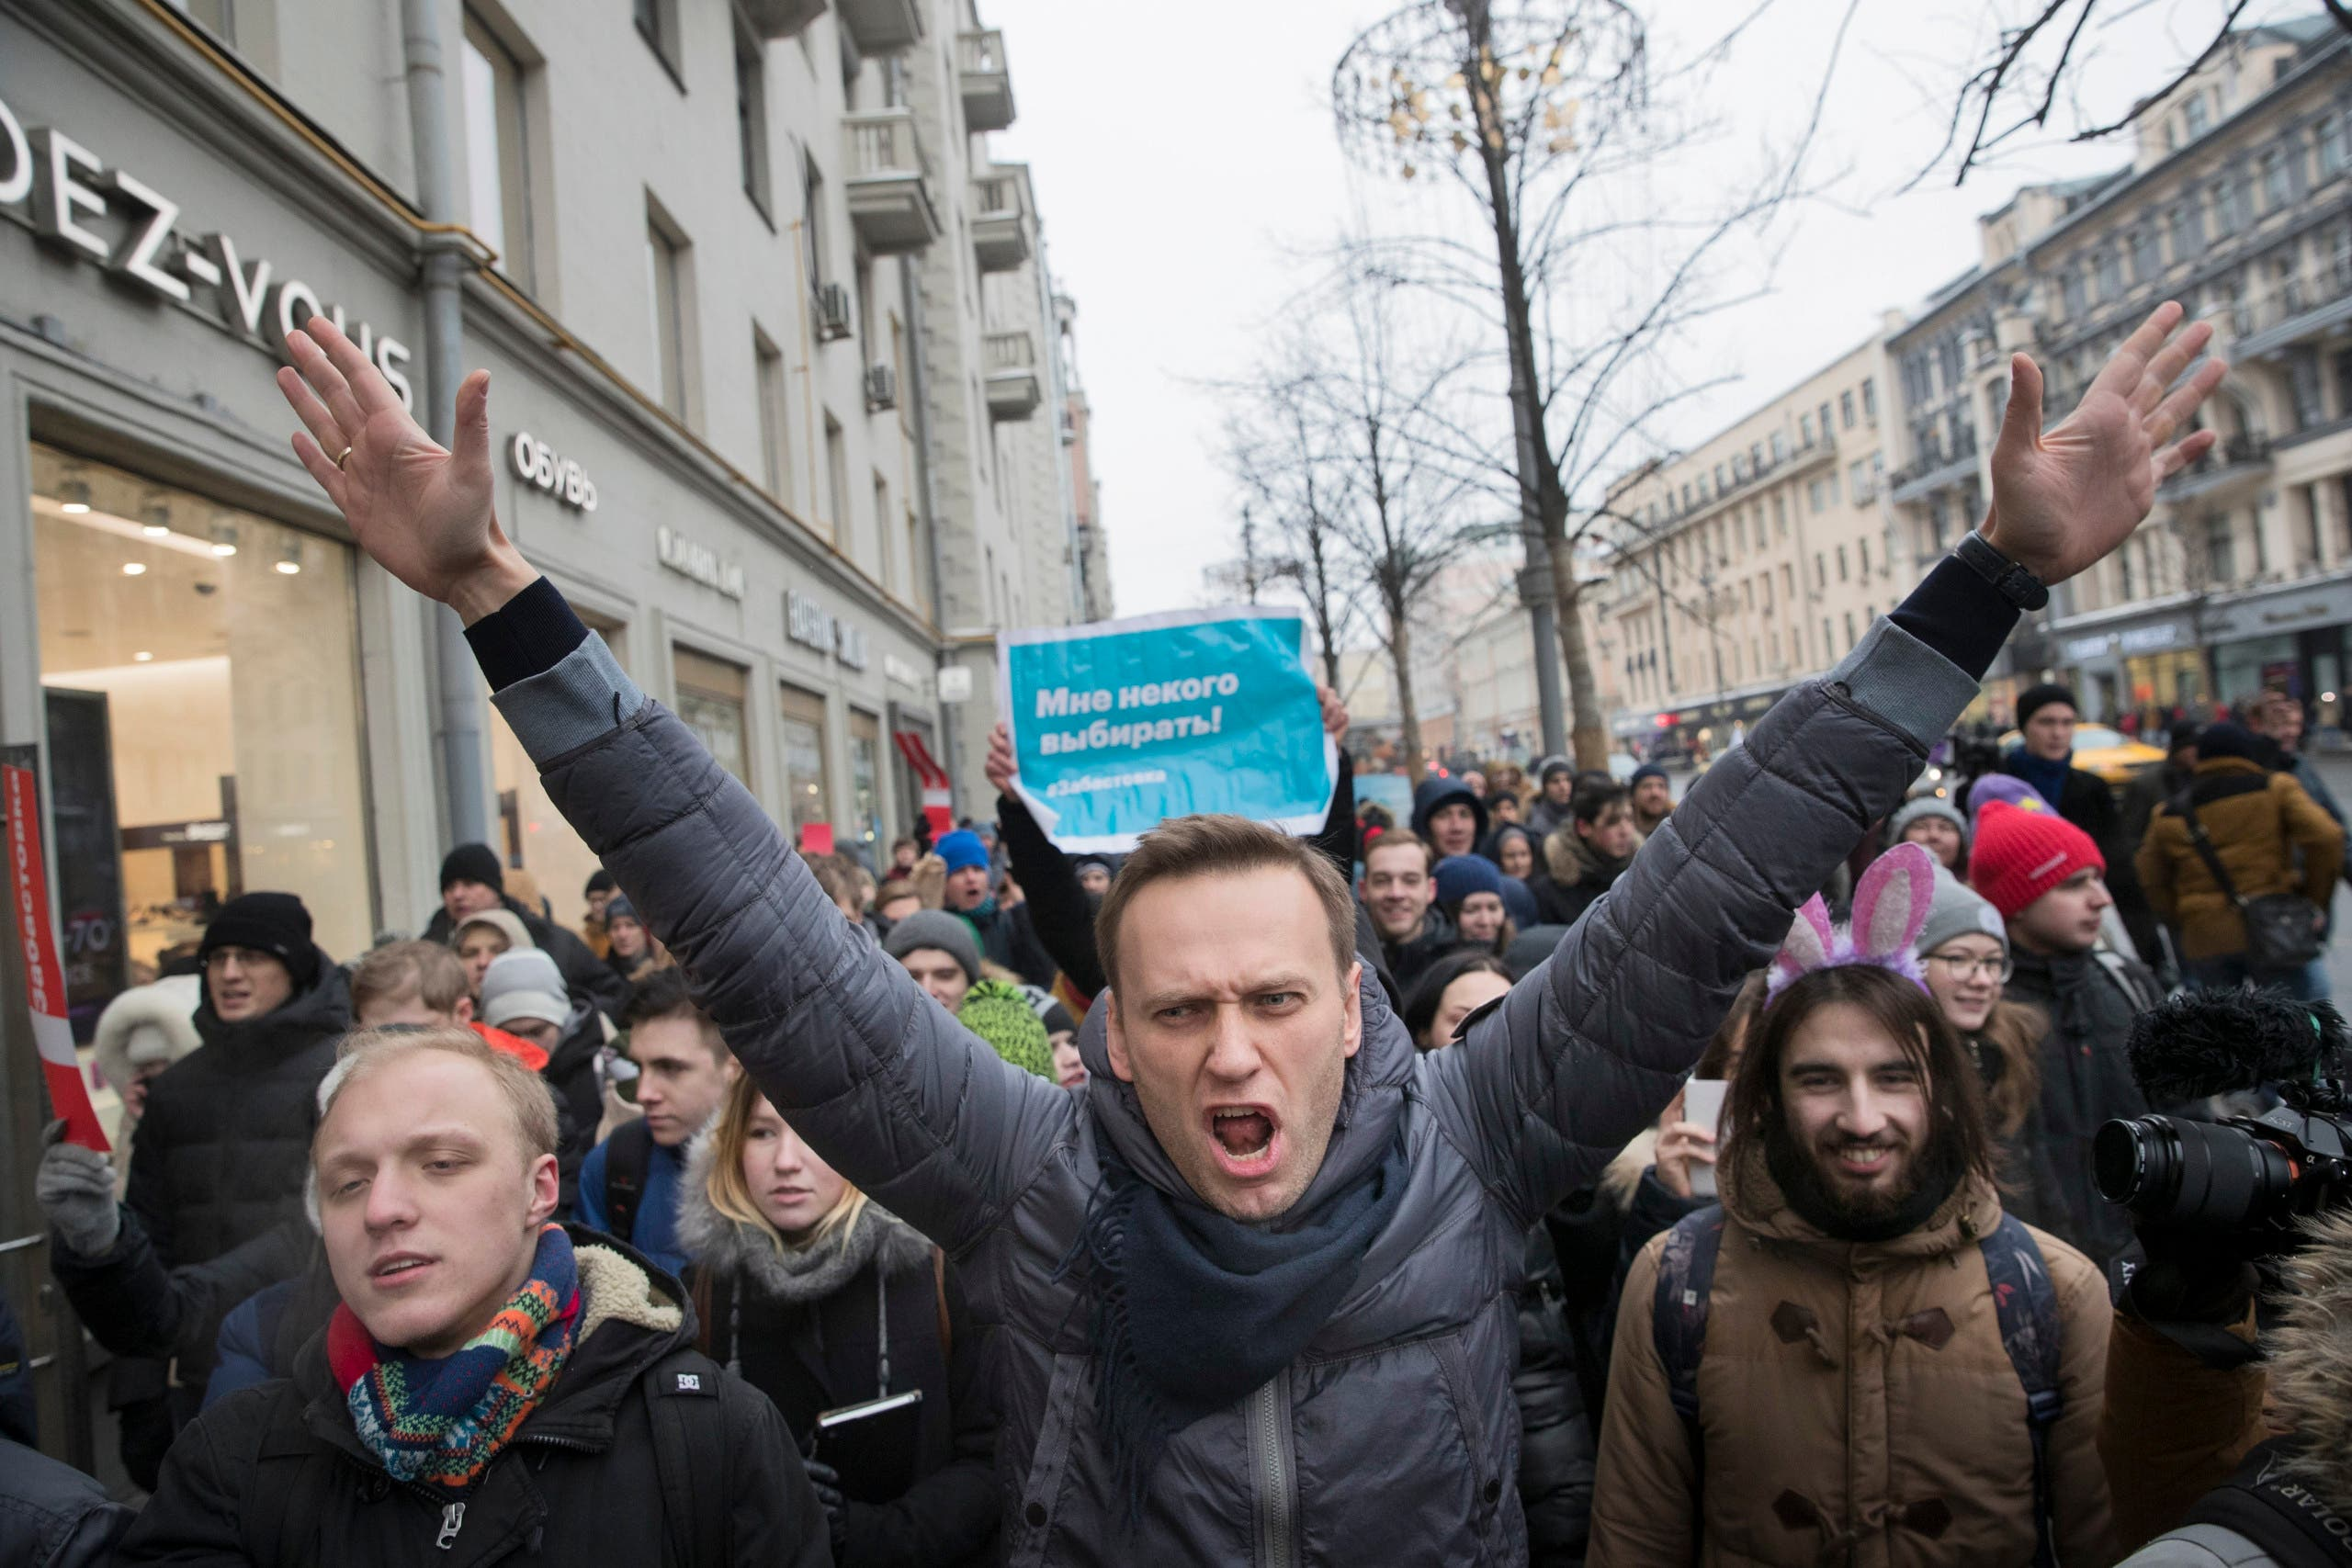 Russian opposition leader Alexei Navalny, centre, was arrested in Moscow while walking with protesters on January 28, 2018, as protests take place across the country. (AP)